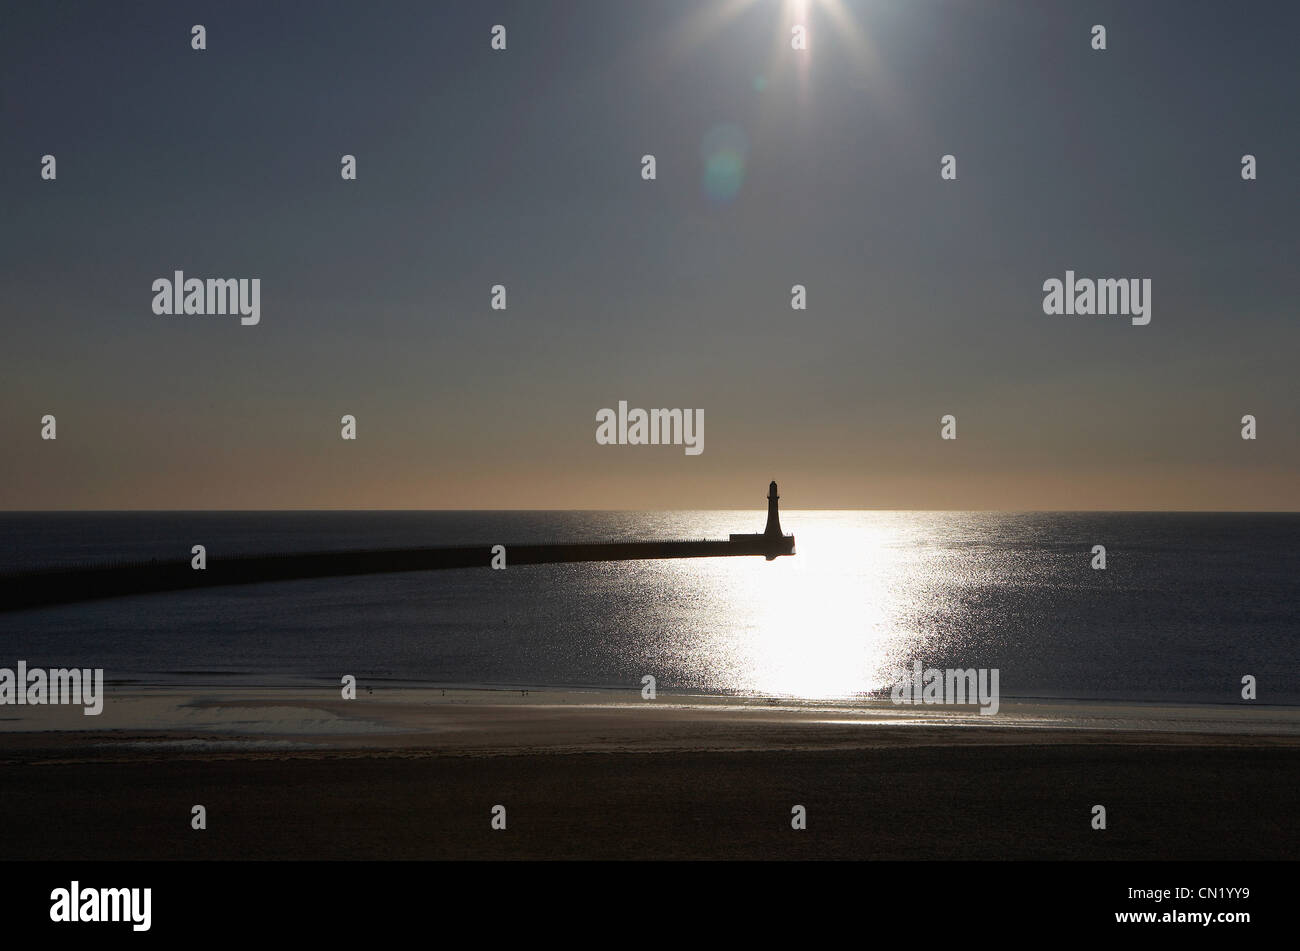 South Shields lighthouse and pier, Tyne and Wear, England - Stock Image